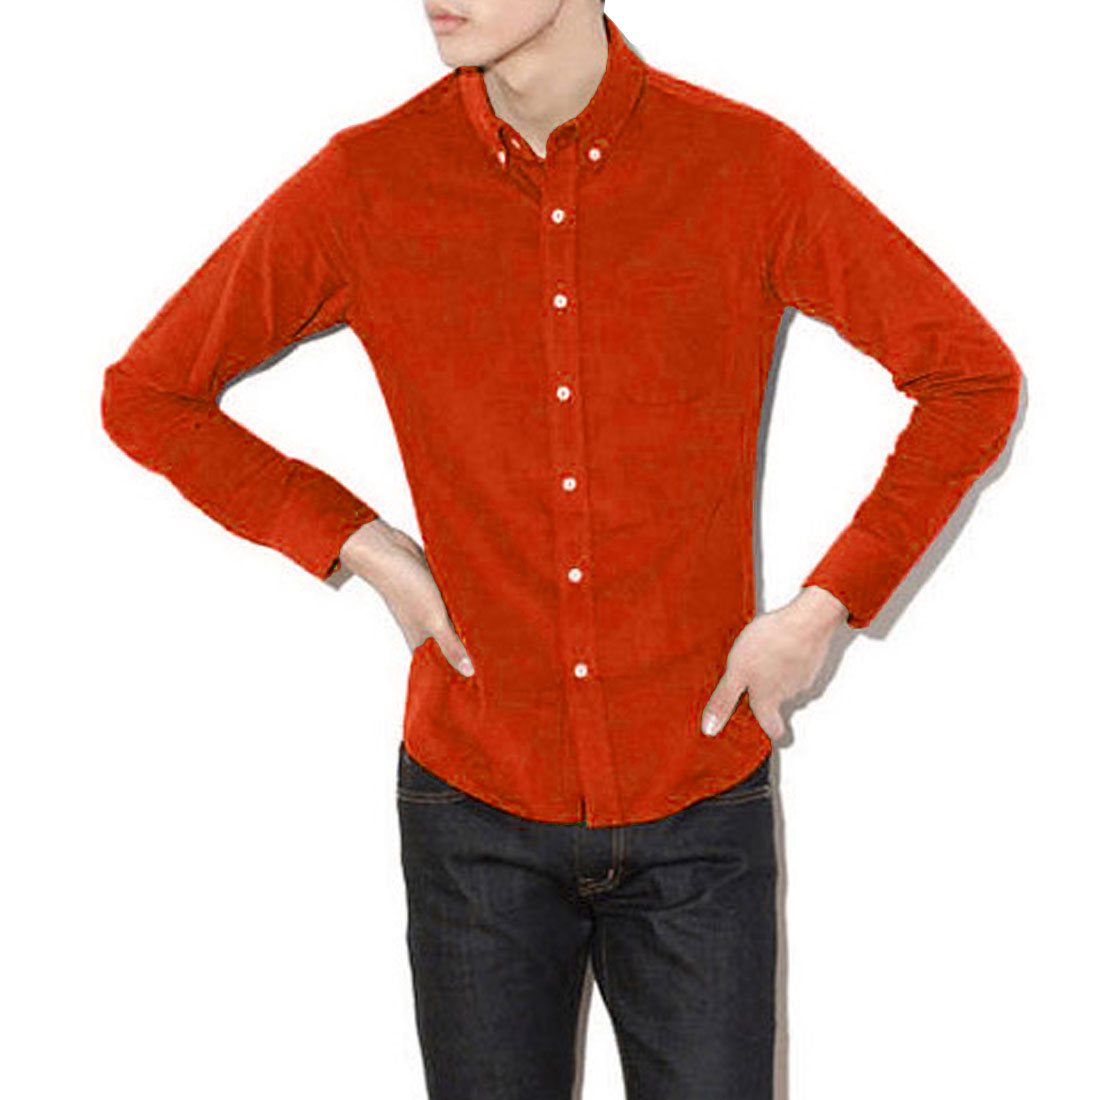 Mens Fashion Point Collar Long Sleeve Button Down Orange Corduroy Shirt M